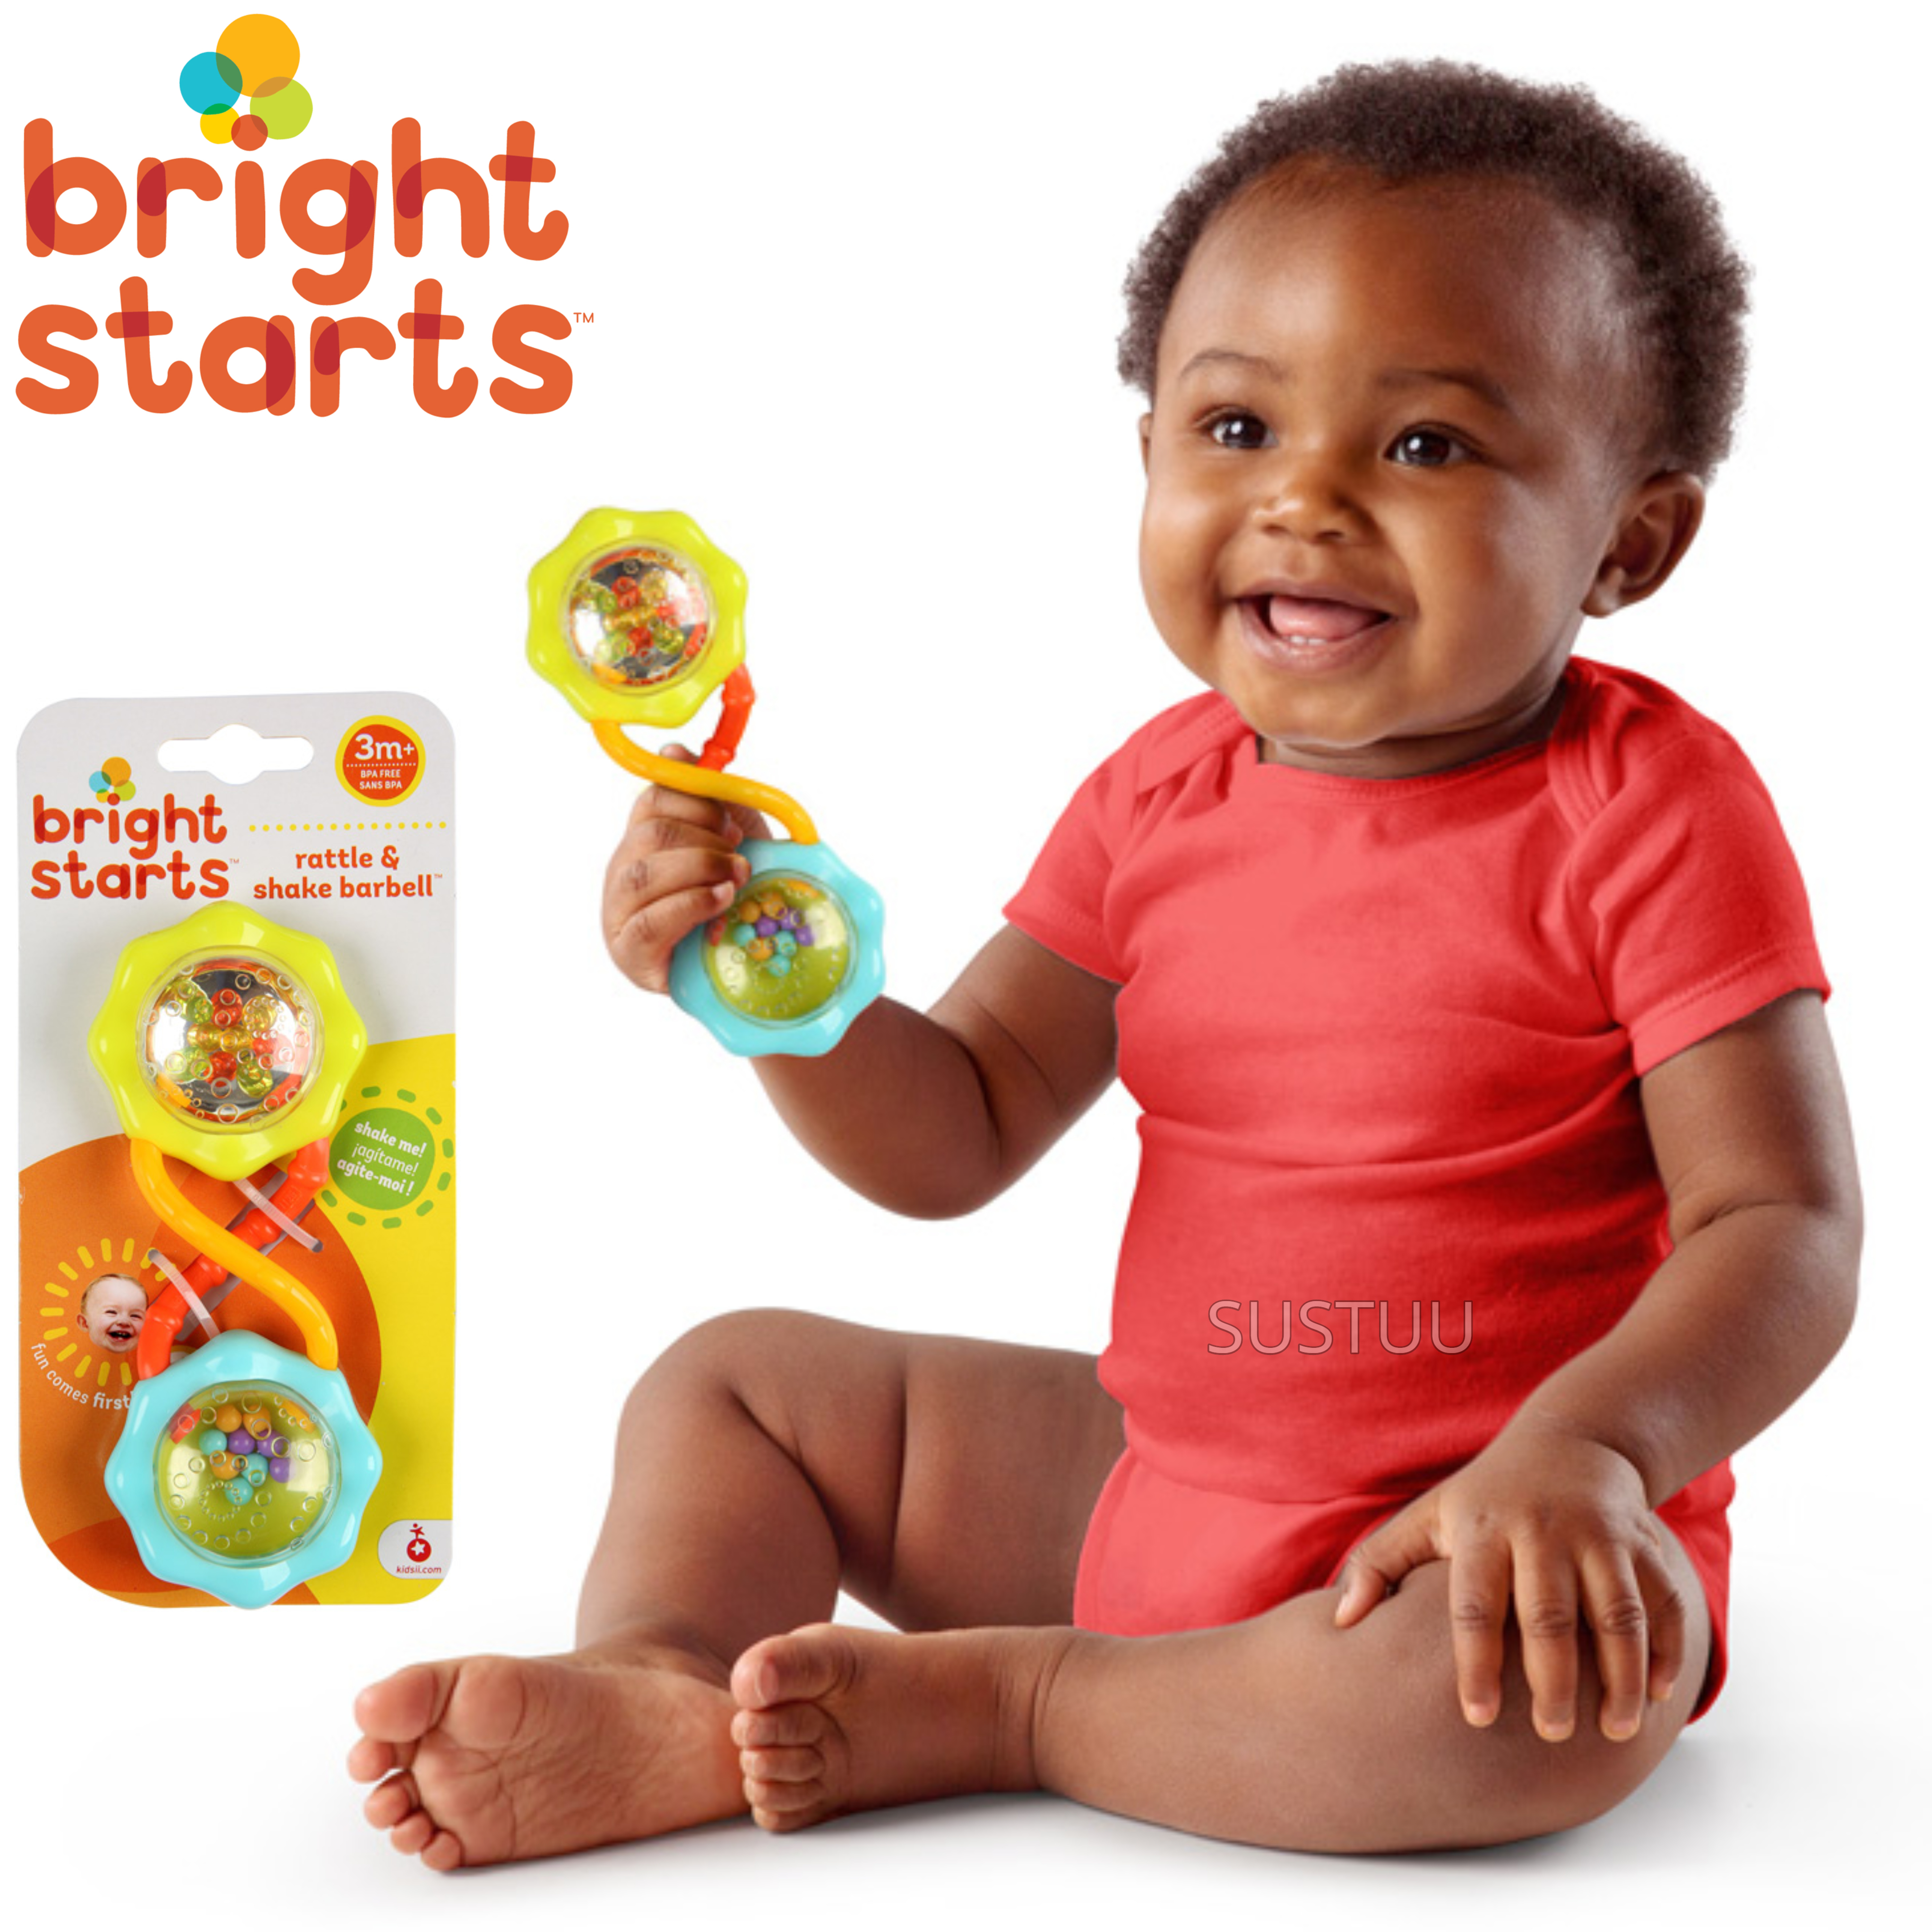 Bright Starts Rattle and Shake Barbell | Clear Rattle With Colourful Beads+Mirror